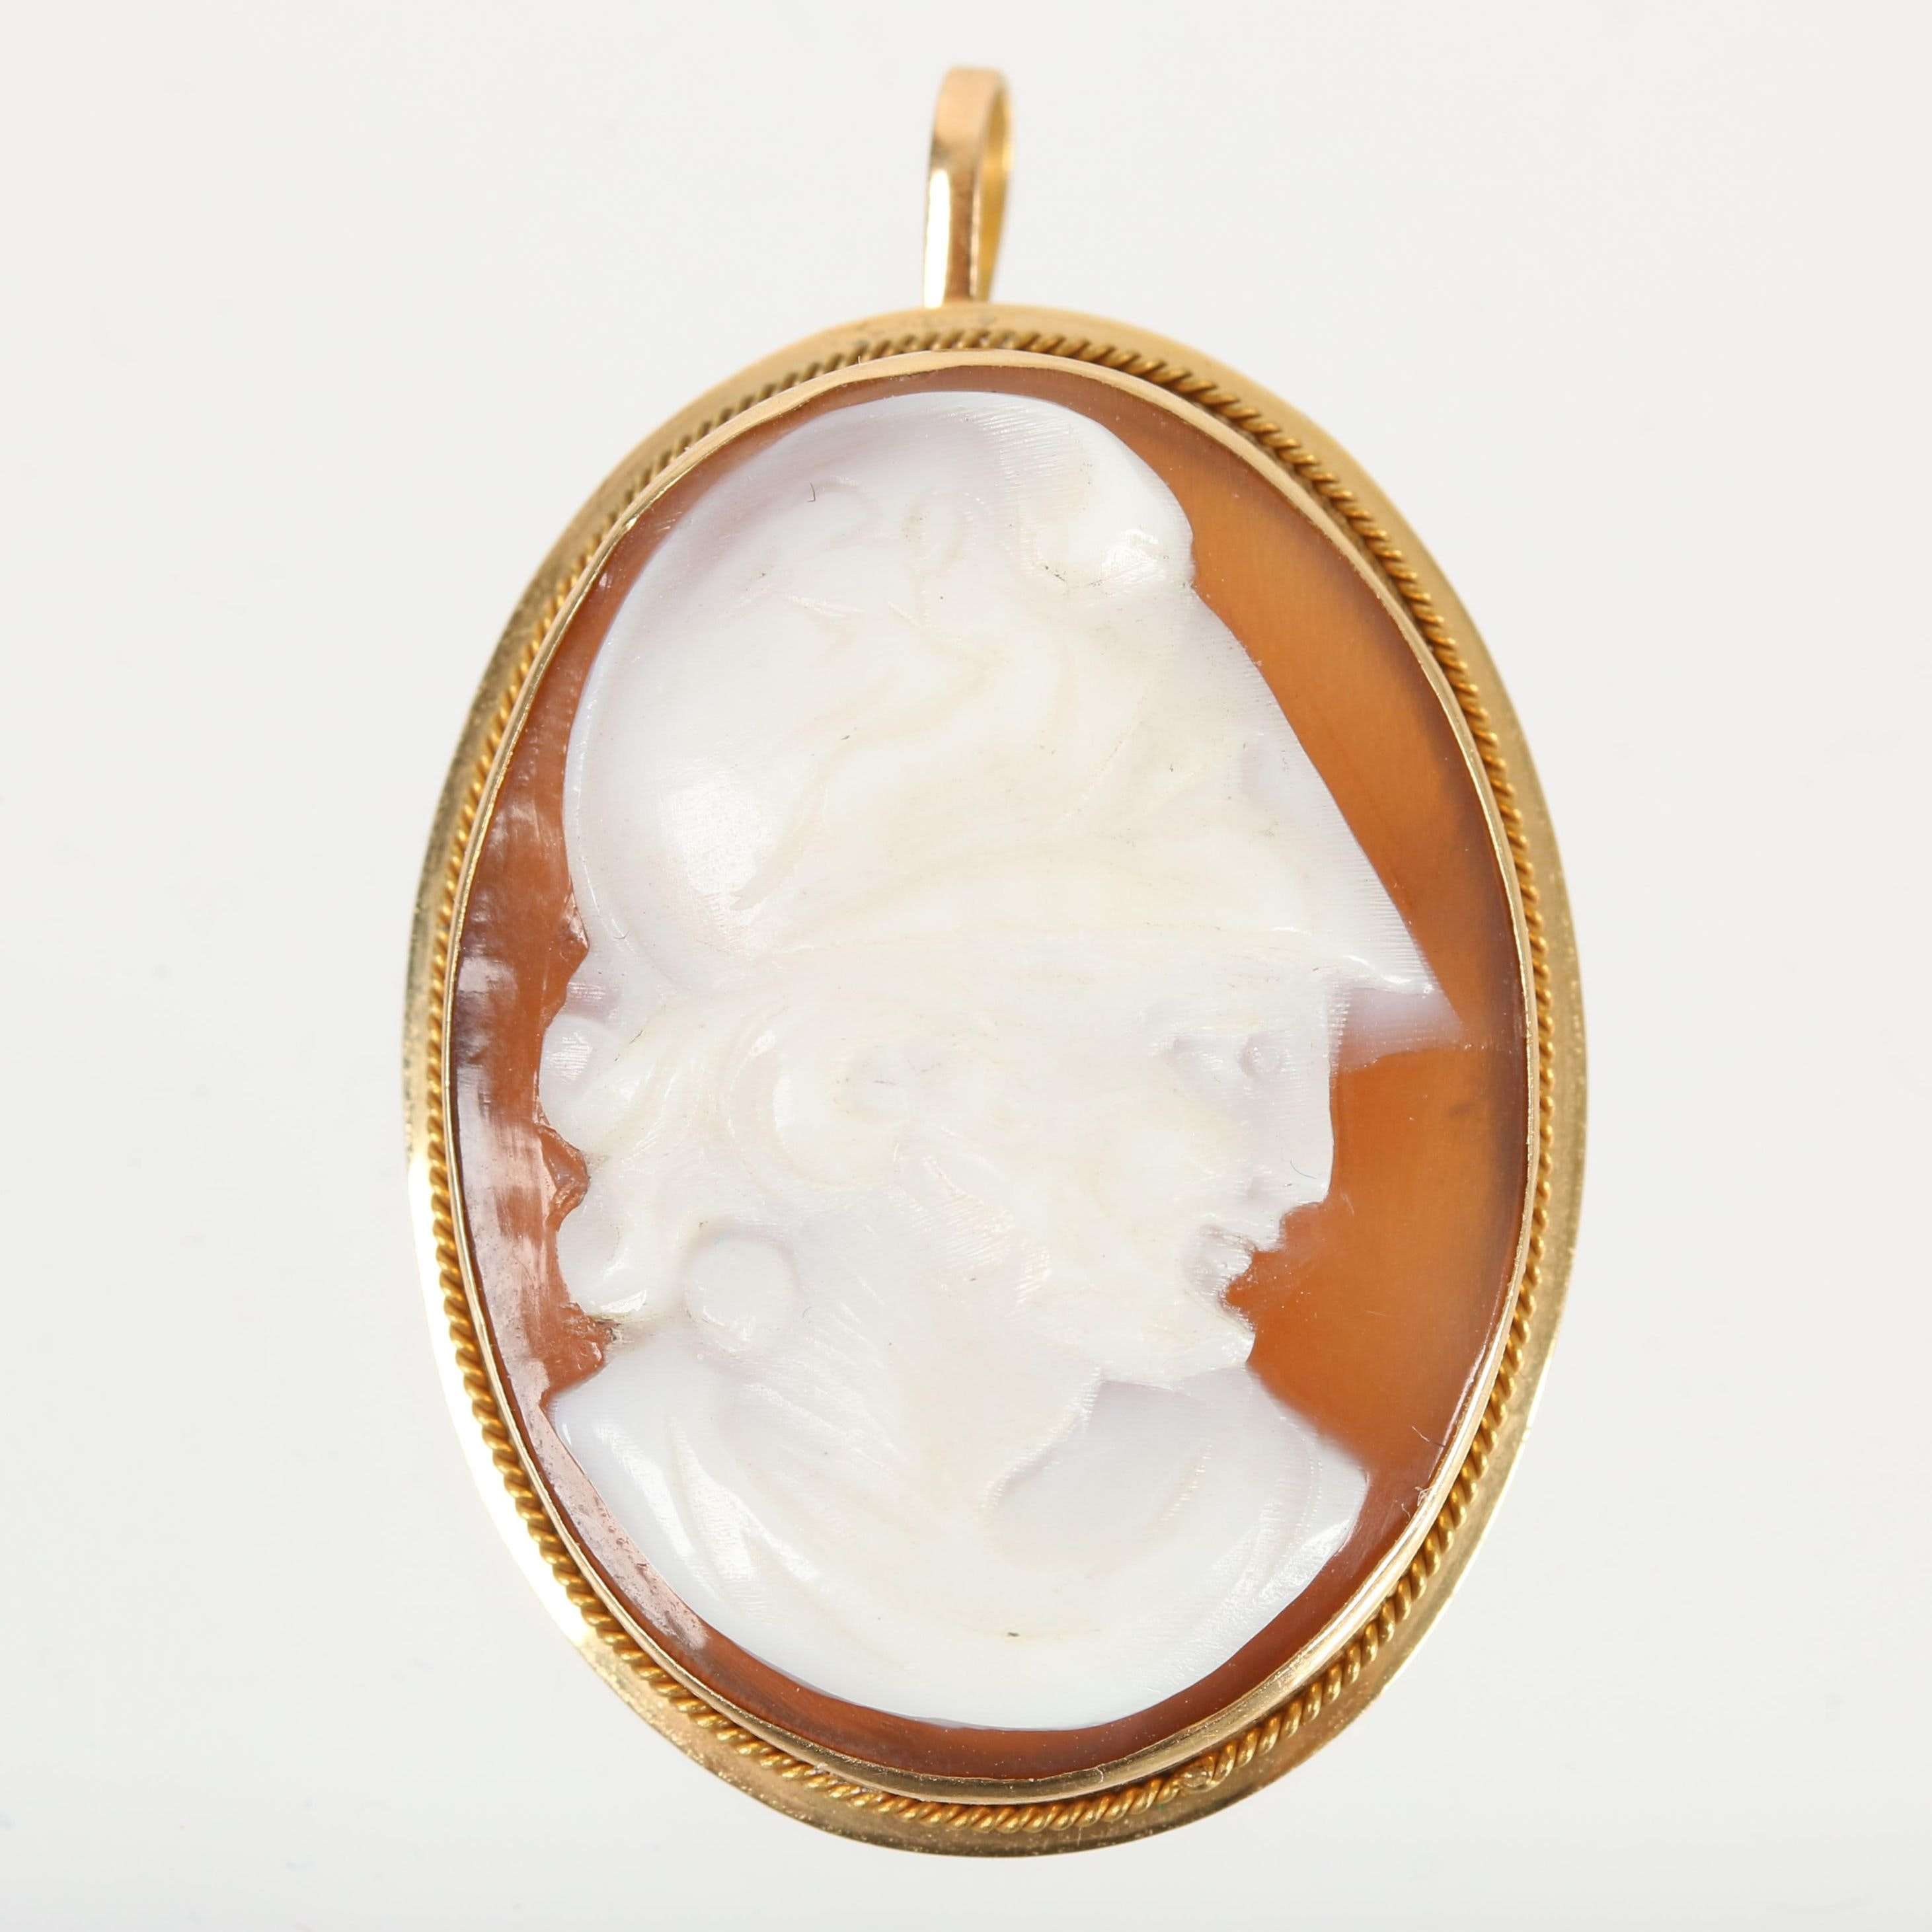 14K Yellow Gold Carved Sardonyx Cameo Converter Brooch